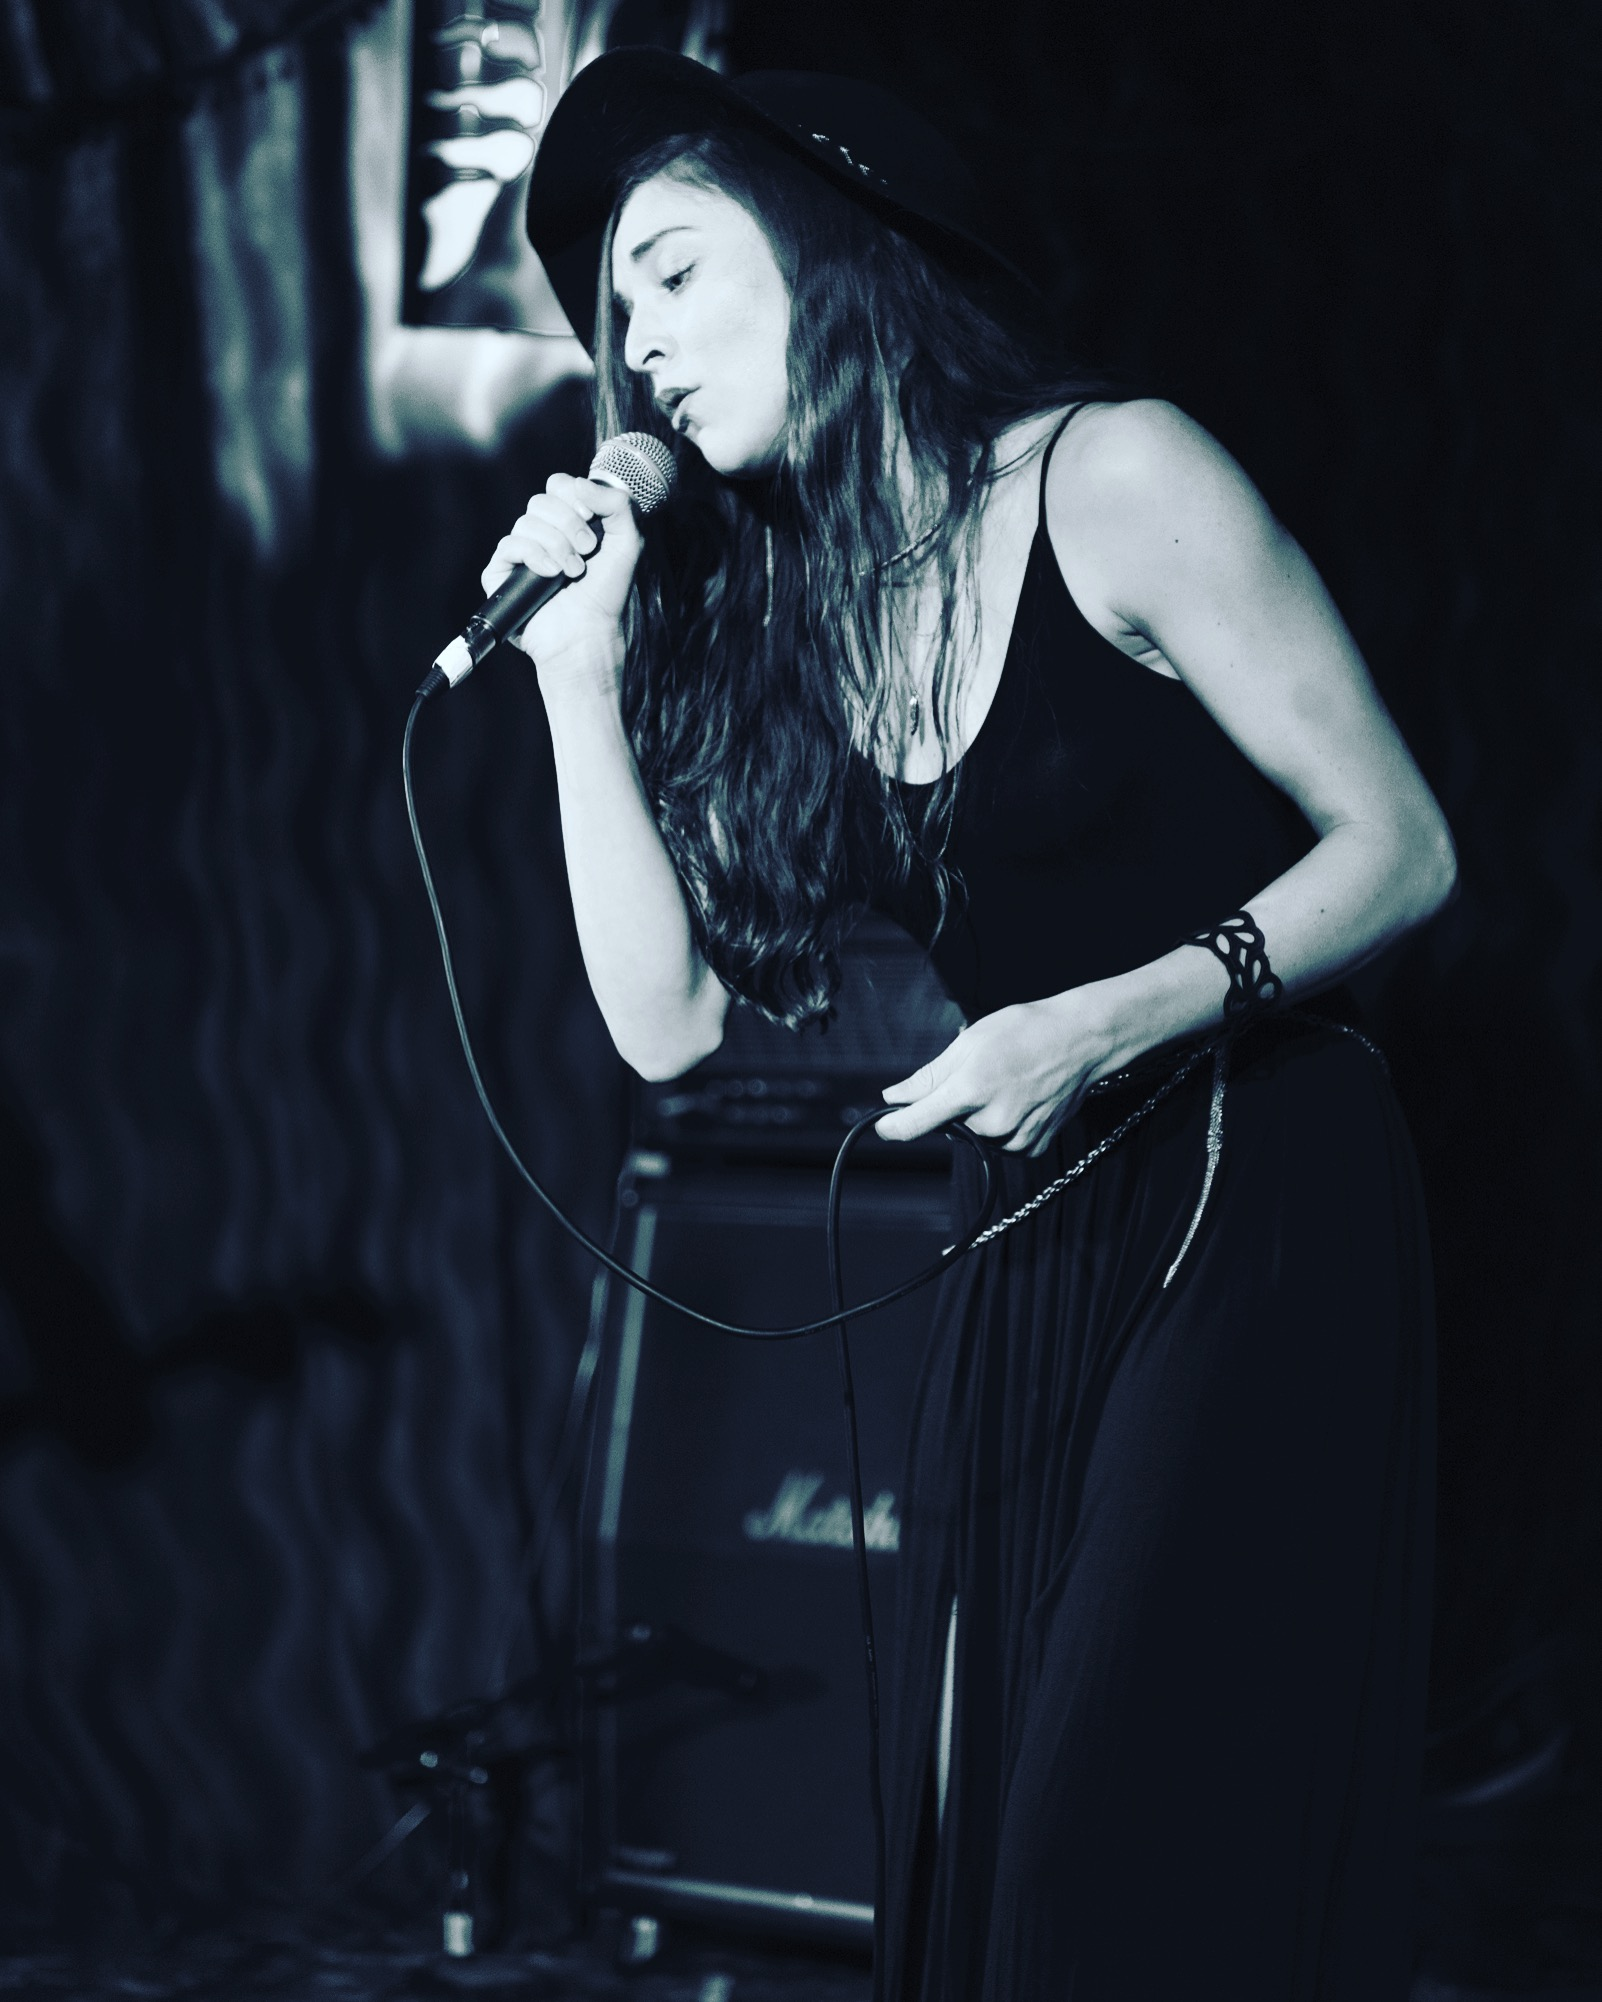 kaylee_robin-black_white_laced_in_blue_singer_singing_alexs_bar